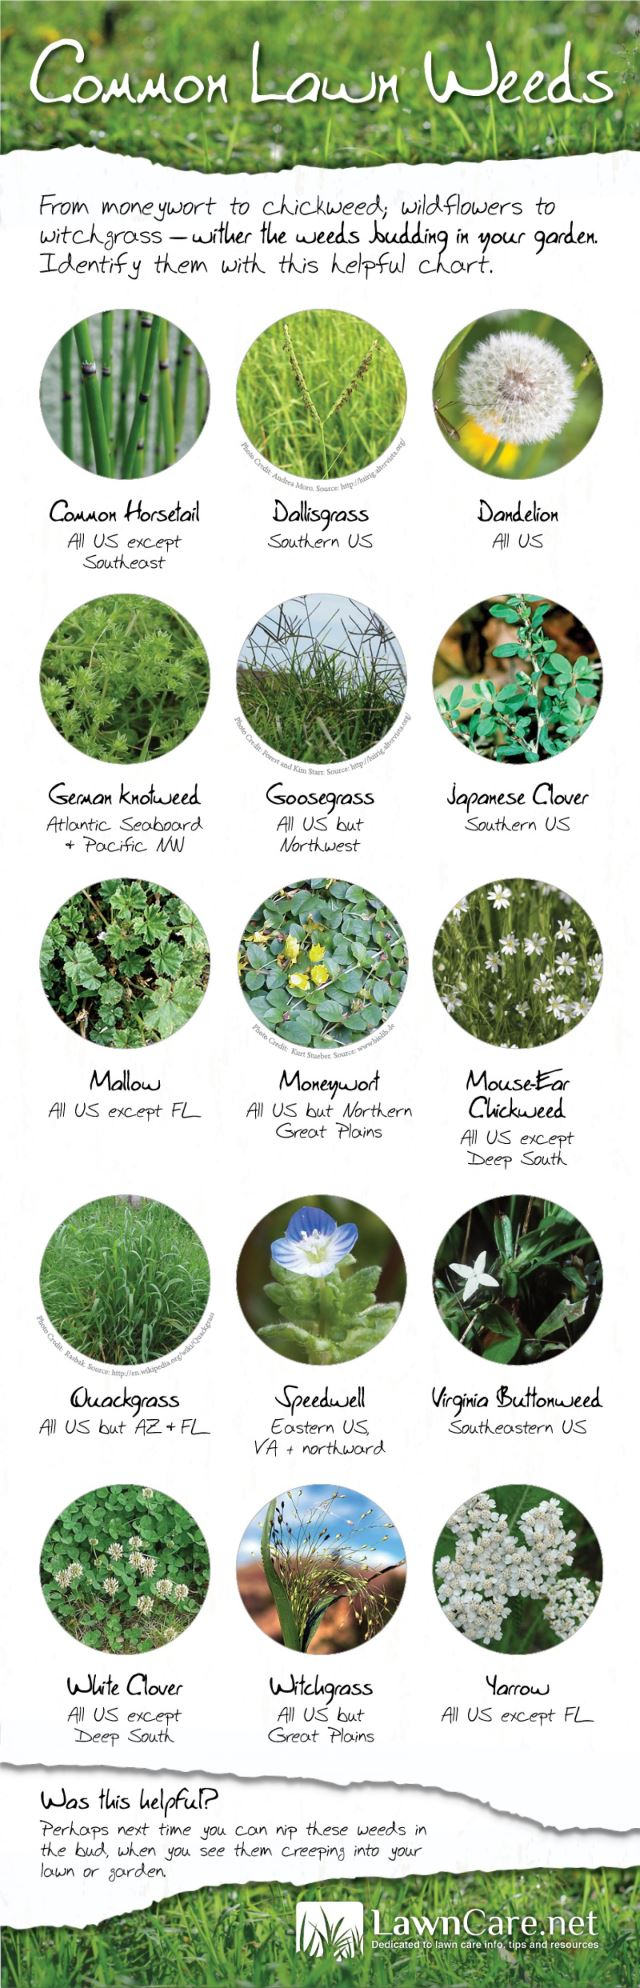 A Visual of Common Lawn Weeds